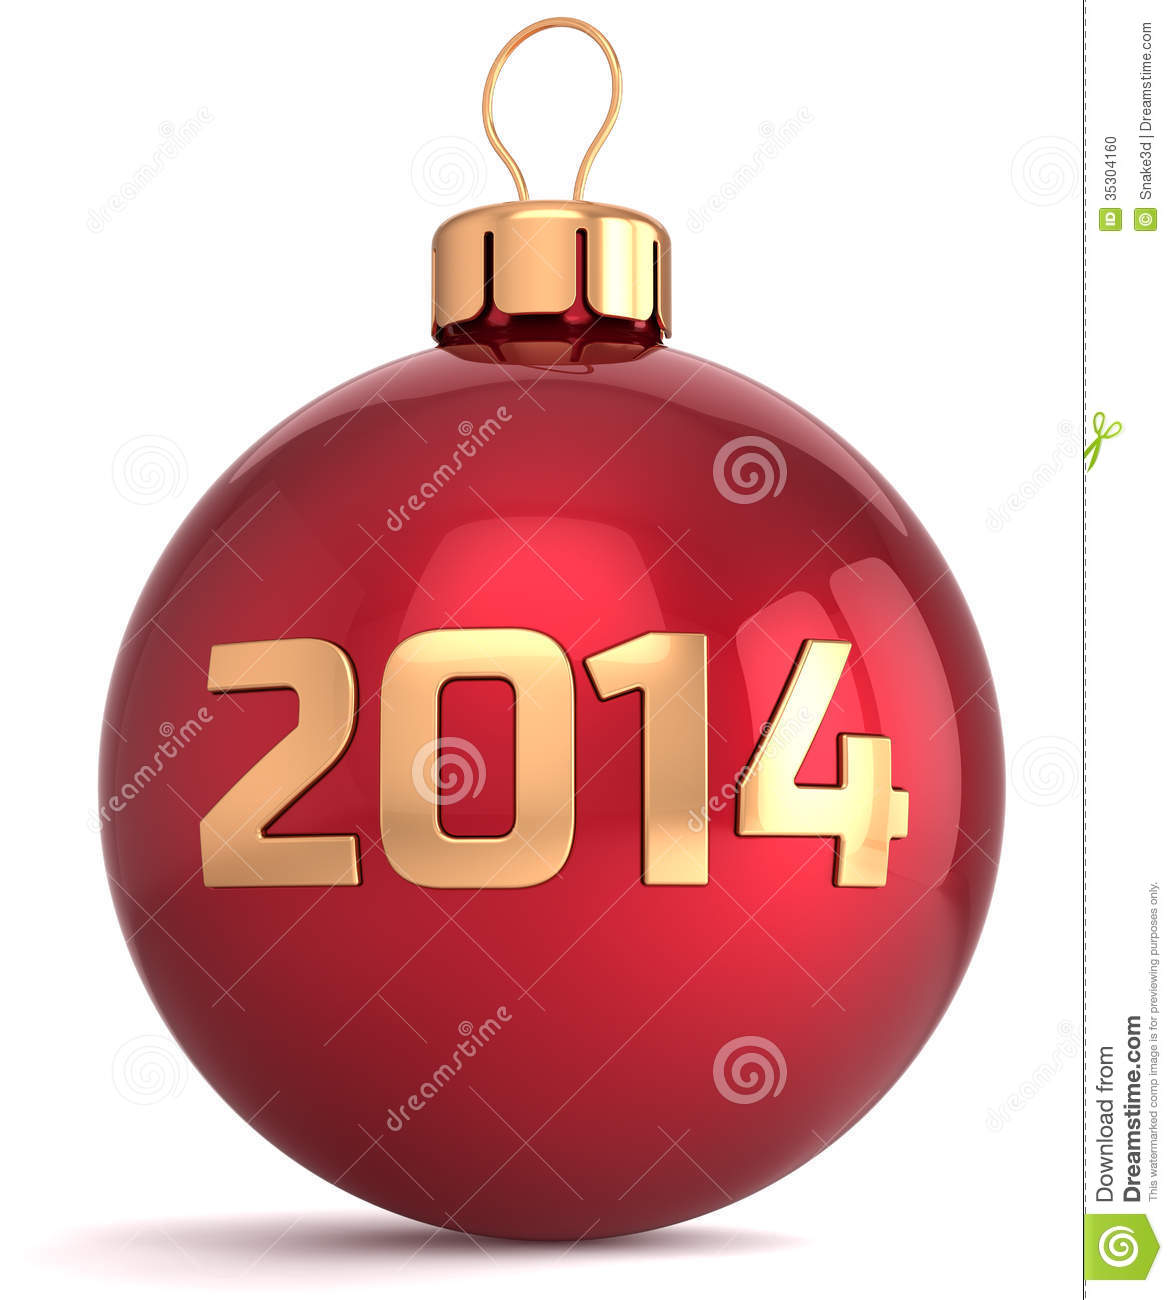 Christmas ball new 2014 year bauble decoration stock photo for 2014 christmas decoration